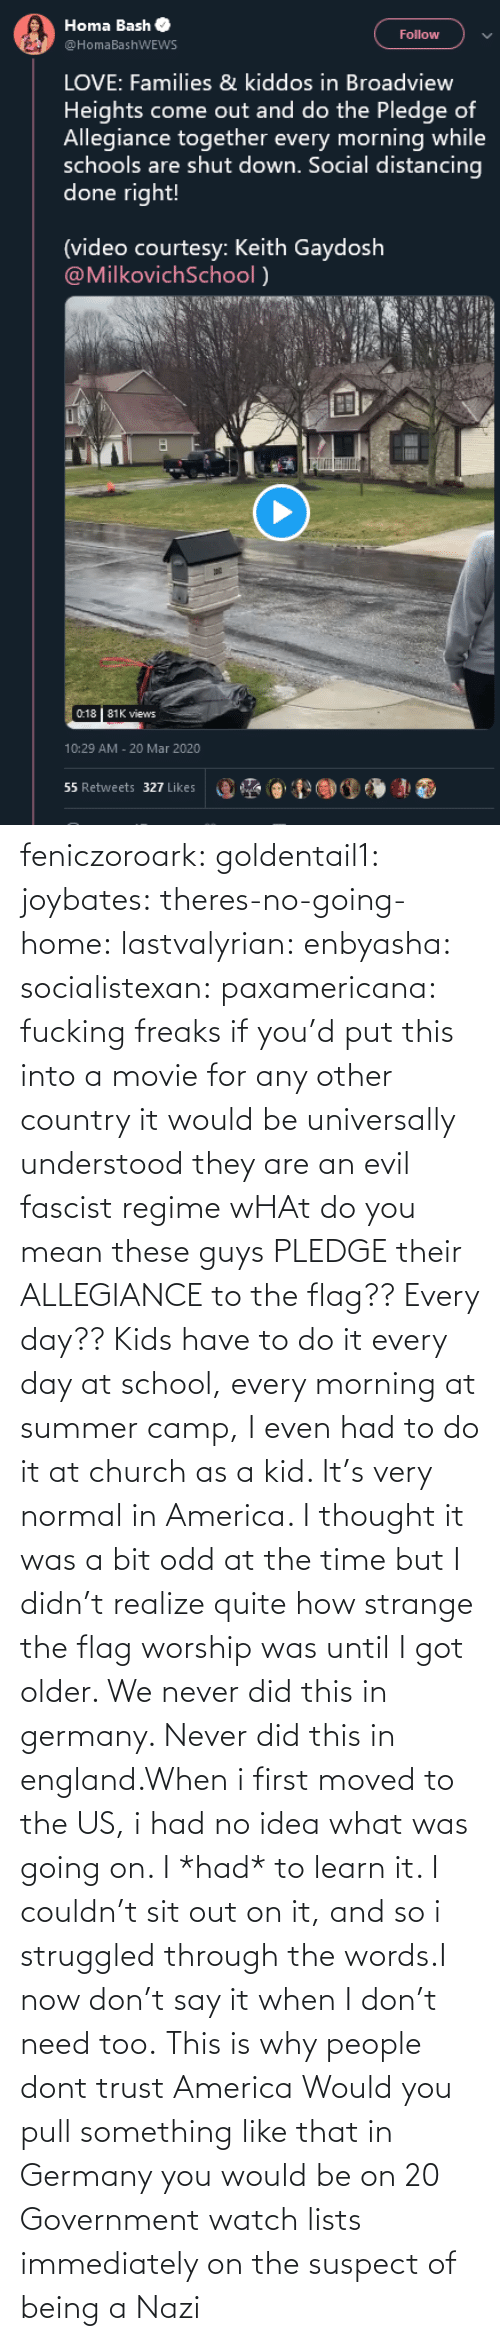 You Mean: feniczoroark:  goldentail1:  joybates:  theres-no-going-home:  lastvalyrian:  enbyasha:  socialistexan:  paxamericana: fucking freaks       if you'd put this into a movie for any other country it would be universally understood they are an evil fascist regime    wHAt do you mean these guys PLEDGE their ALLEGIANCE to the flag?? Every day??   Kids have to do it every day at school, every morning at summer camp, I even had to do it at church as a kid. It's very normal in America. I thought it was a bit odd at the time but I didn't realize quite how strange the flag worship was until I got older.    We never did this in germany. Never did this in england.When i first moved to the US, i had no idea what was going on. I *had* to learn it. I couldn't sit out on it, and so i struggled through the words.I now don't say it when I don't need too.   This is why people dont trust America    Would you pull something like that in Germany you would be on 20 Government watch lists immediately on the suspect of being a Nazi